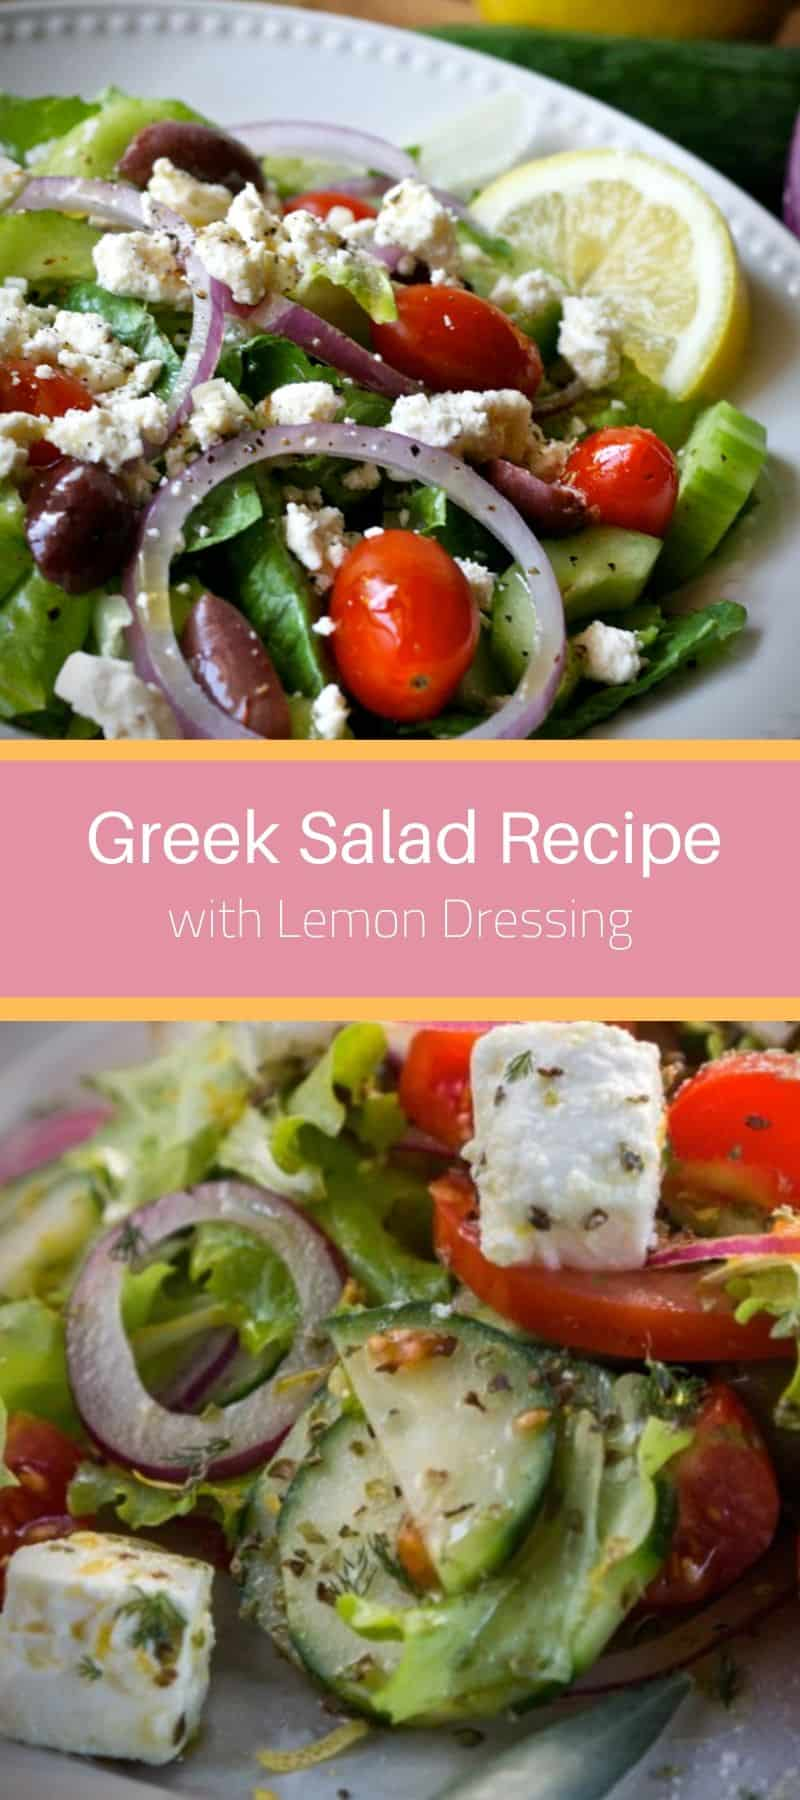 Greek Salad Recipe with Lemon Dressing 3